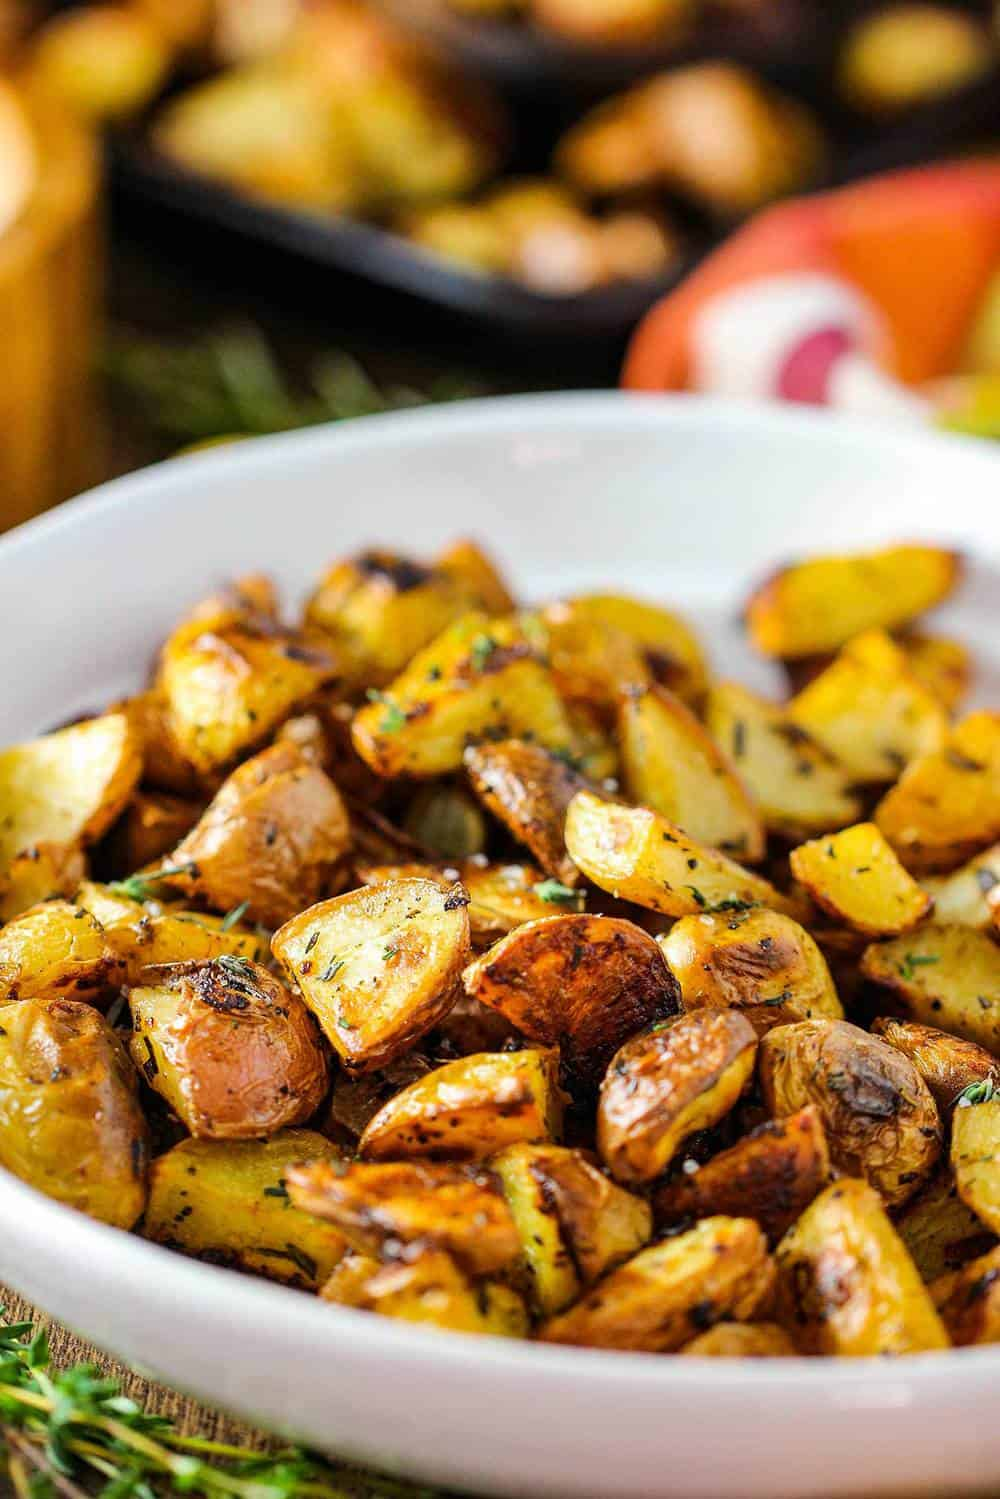 Roasted potatoes with balsamic and herbs in a white bowl.